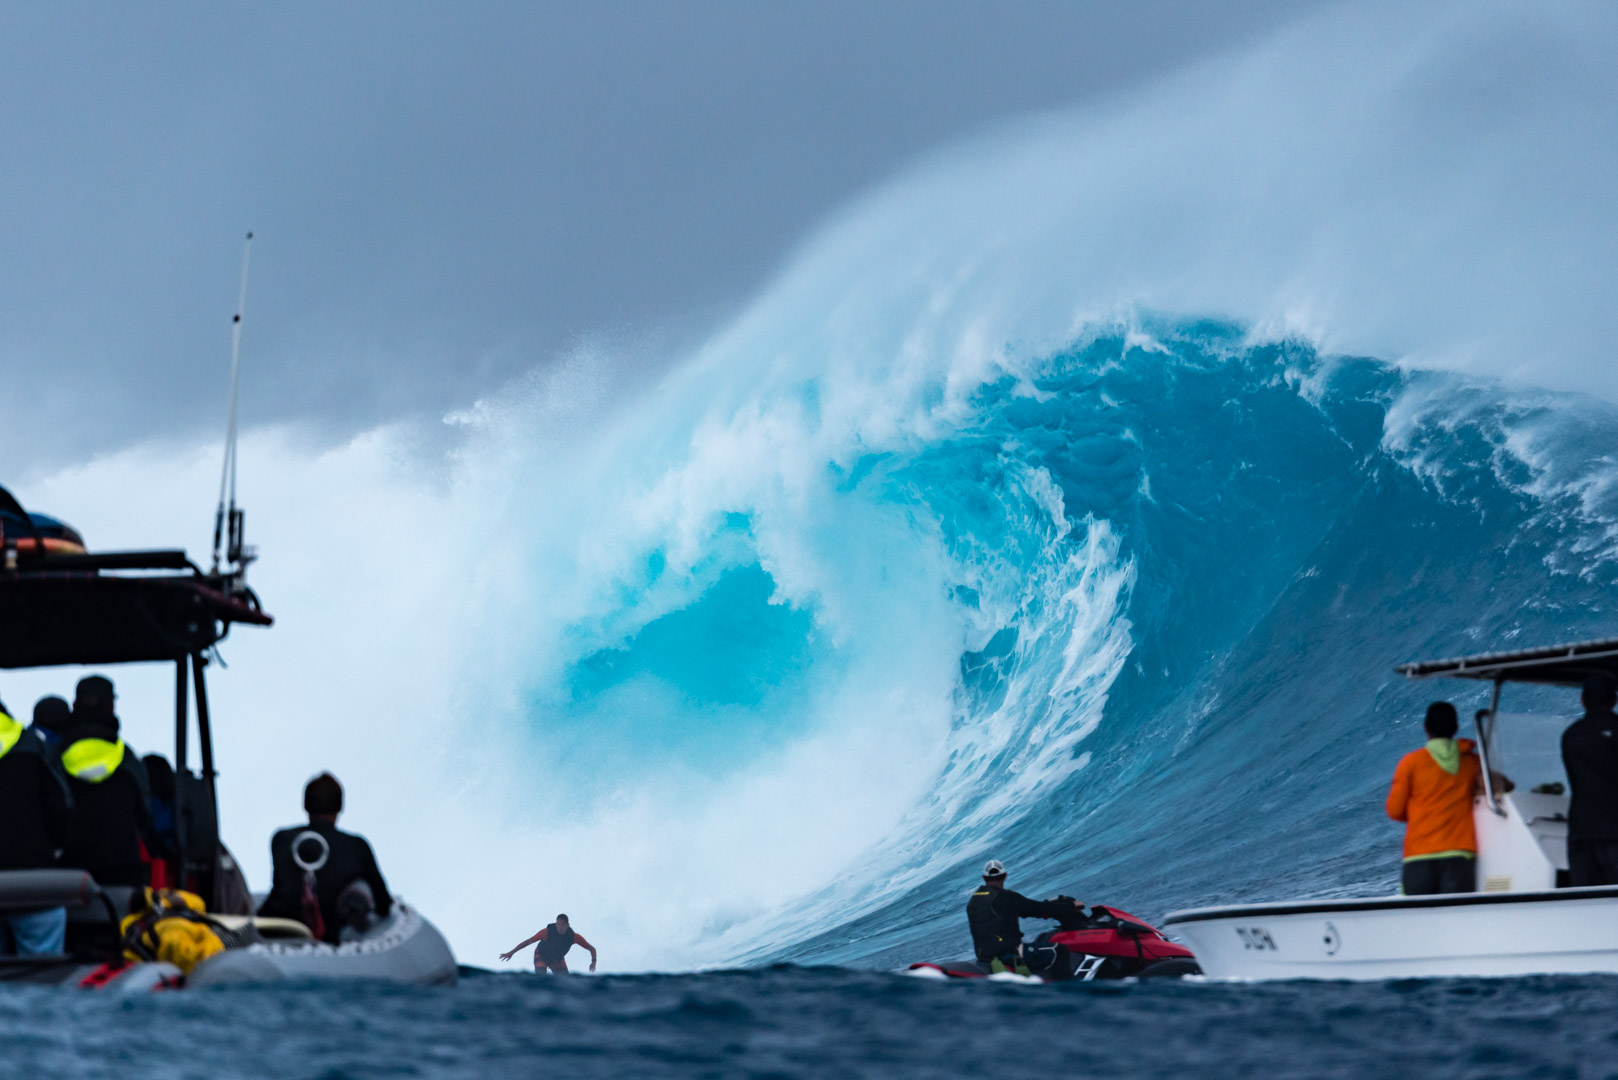 Cloudbreak thundercloud swell 2018.jpg